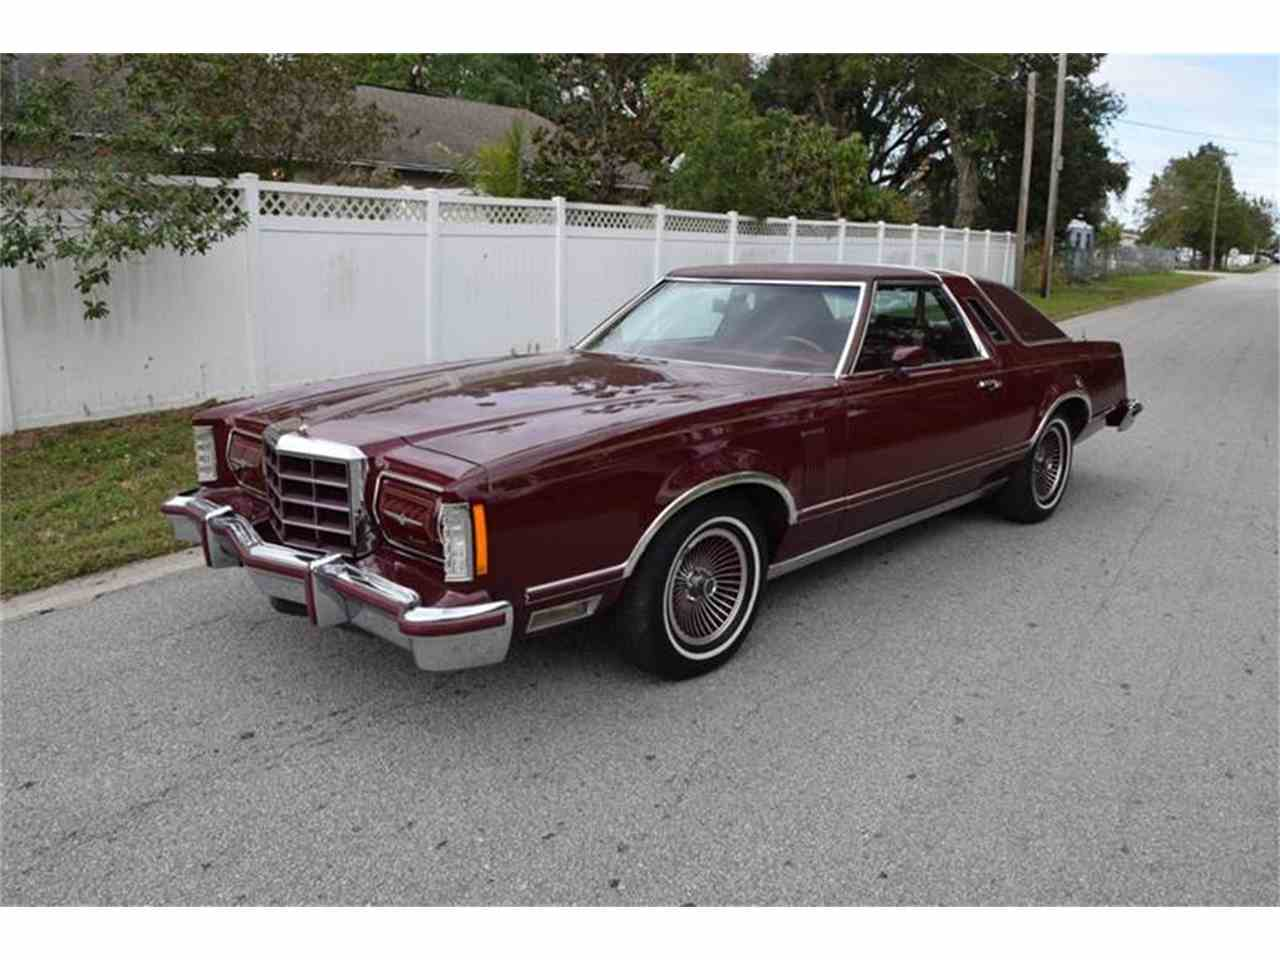 1977 To 1979 Ford Thunderbird For Sale On